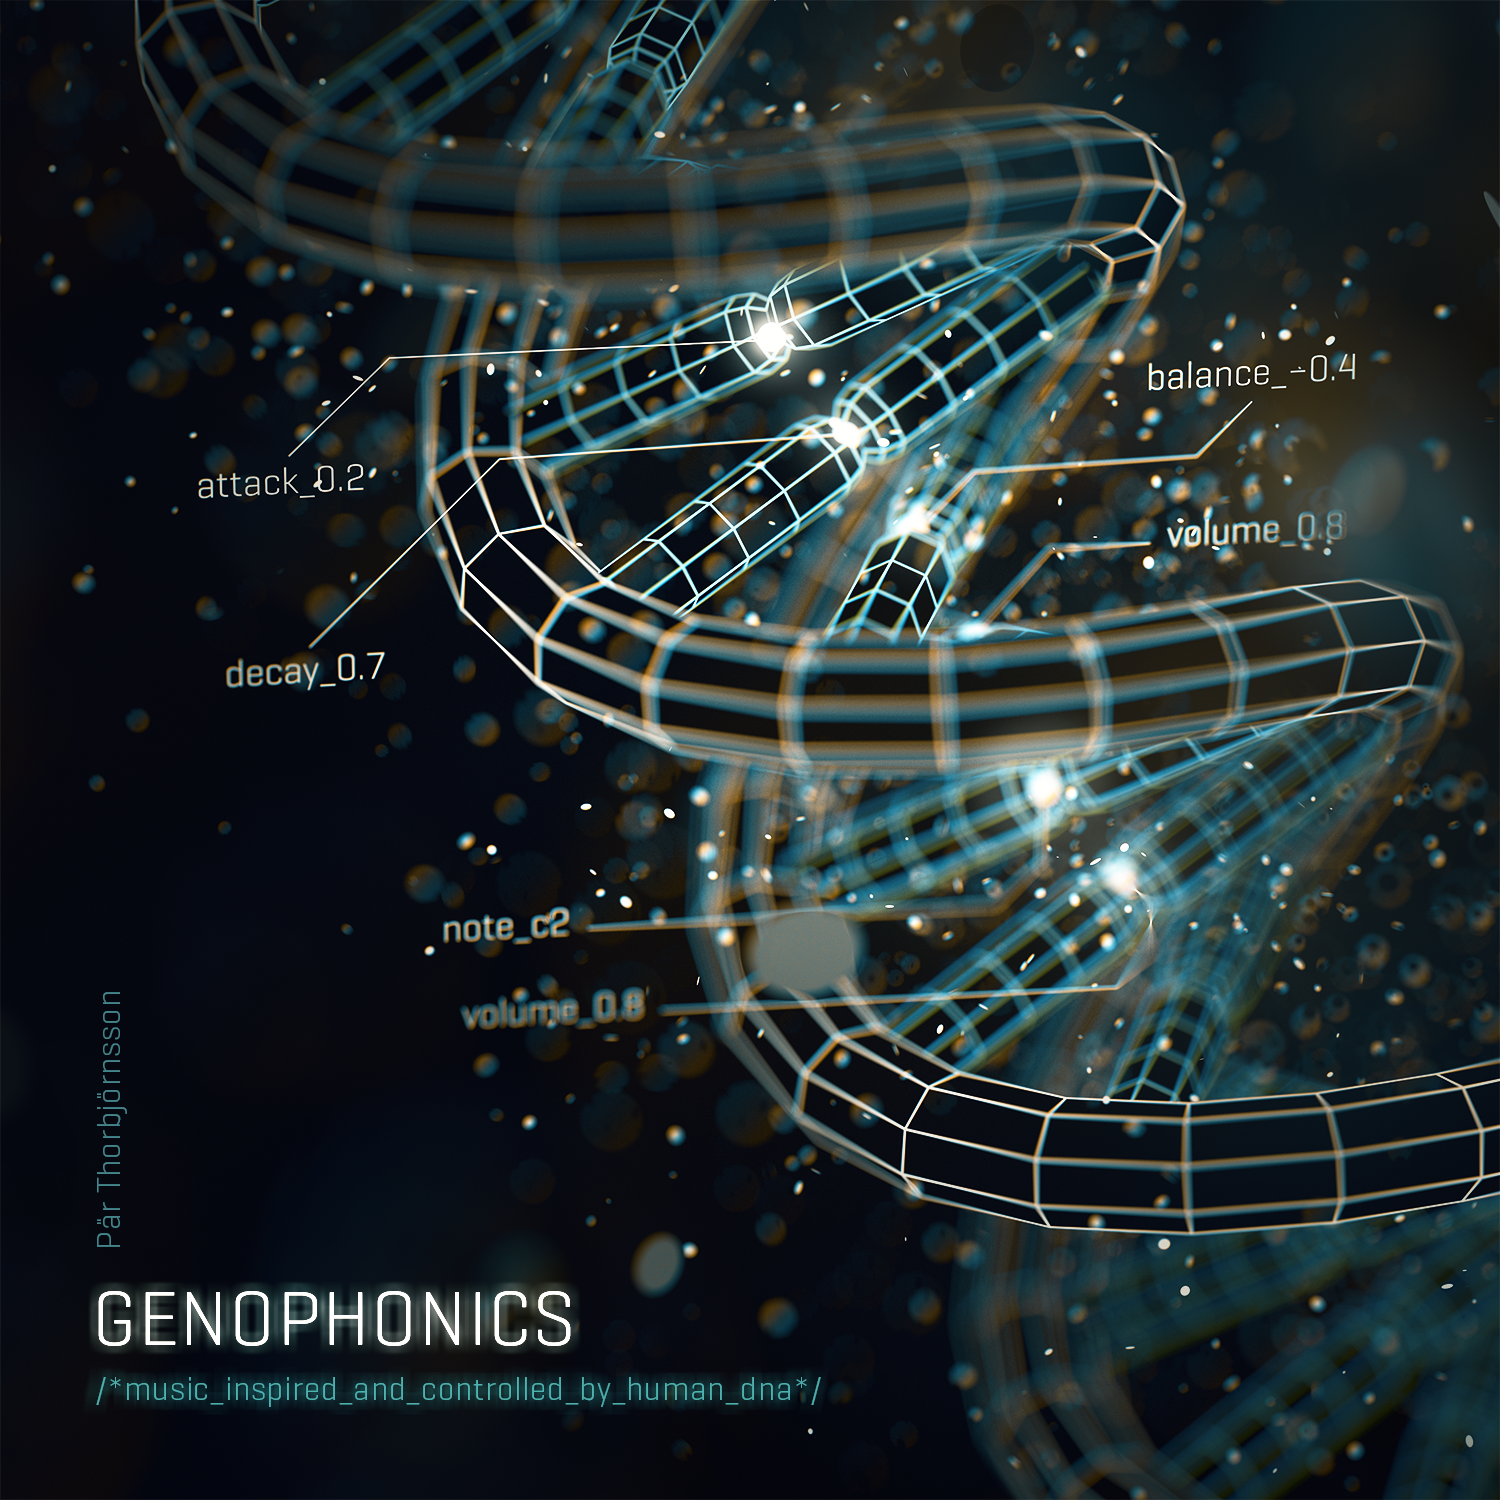 Genophonics-cover-2017-1500px-01.png